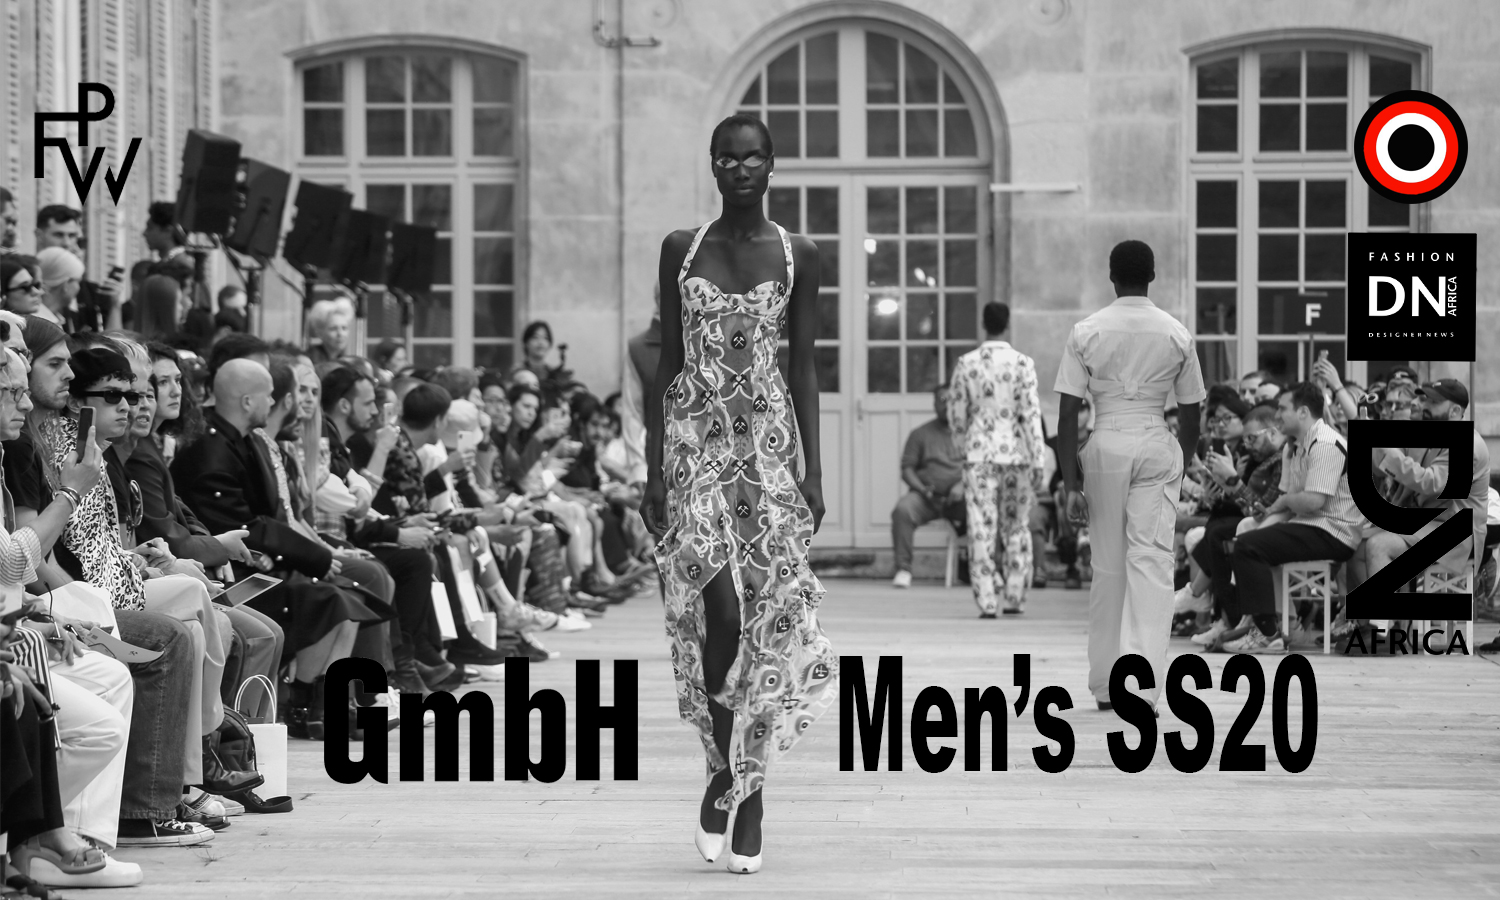 AFRICAN FASHION STYLE MAGAZINE – GmbH Show of Paris Fashion Week Men's SS20 - designers Serhat Isik and Benjamin Alexander Huseby- Model : NGATBEL Nyagatbel_ PR Robin Meason Founder and CEO of RITUAL PROJECTS - Photographer DAN NGU - Official Media Partner DN AFRICA - STUDIO 24 NIGERIA - STUDIO 24 INTERNATIONAL - Ifeanyi Christopher Oputa MD AND CEO OF COLVI LIMITED AND STUDIO 24 - CHEVEUX CHERIE and CHEVEUX CHERIE STUDIO BY MARIEME DUBOZ- Fashion Editor Nahomie NOOR COULIBALY